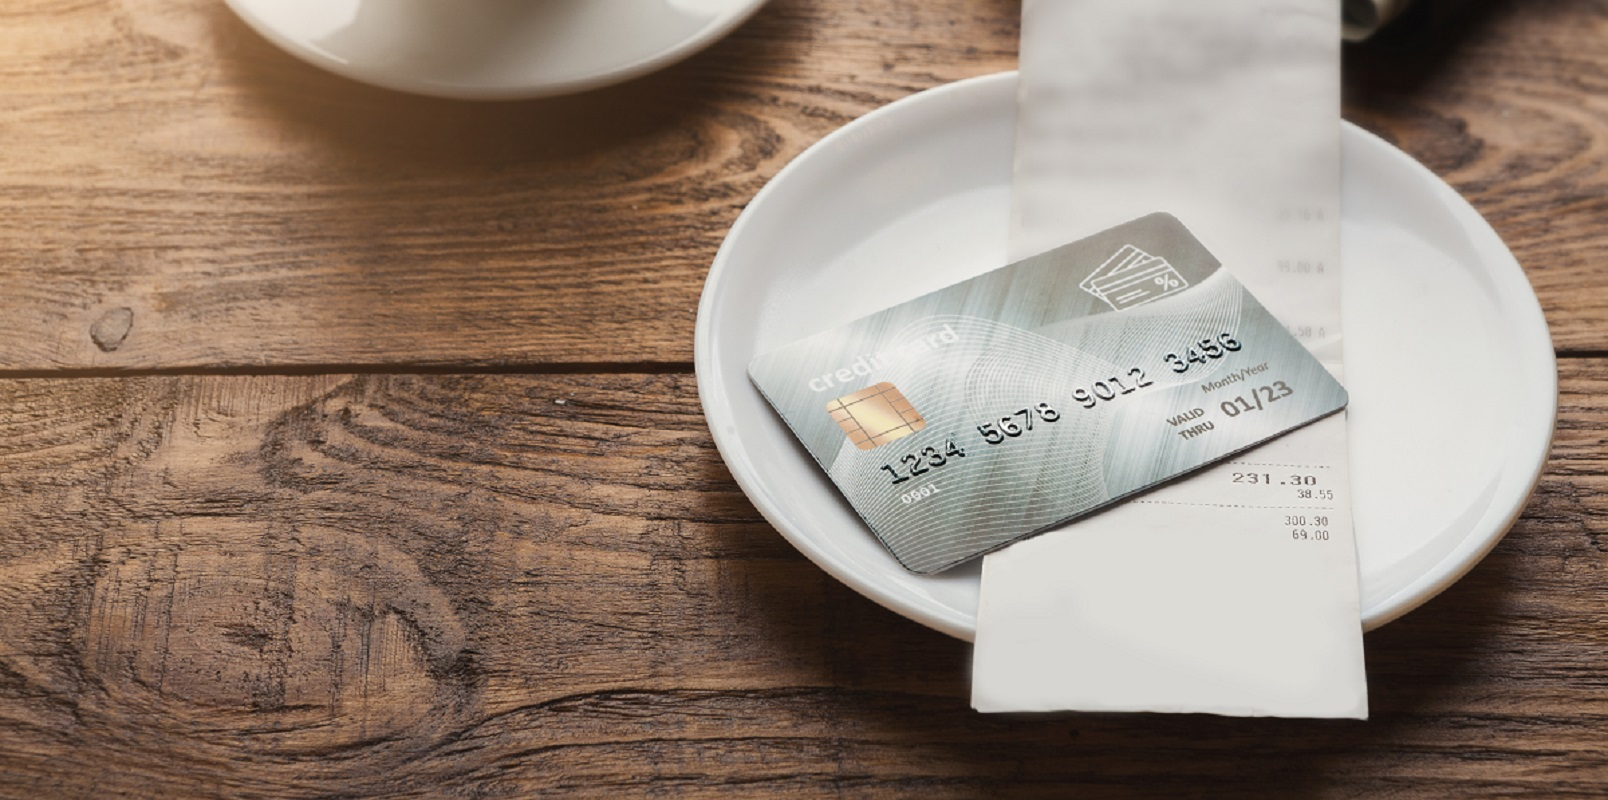 Restaurant bill and credit card in empty white plate on a wooden table.